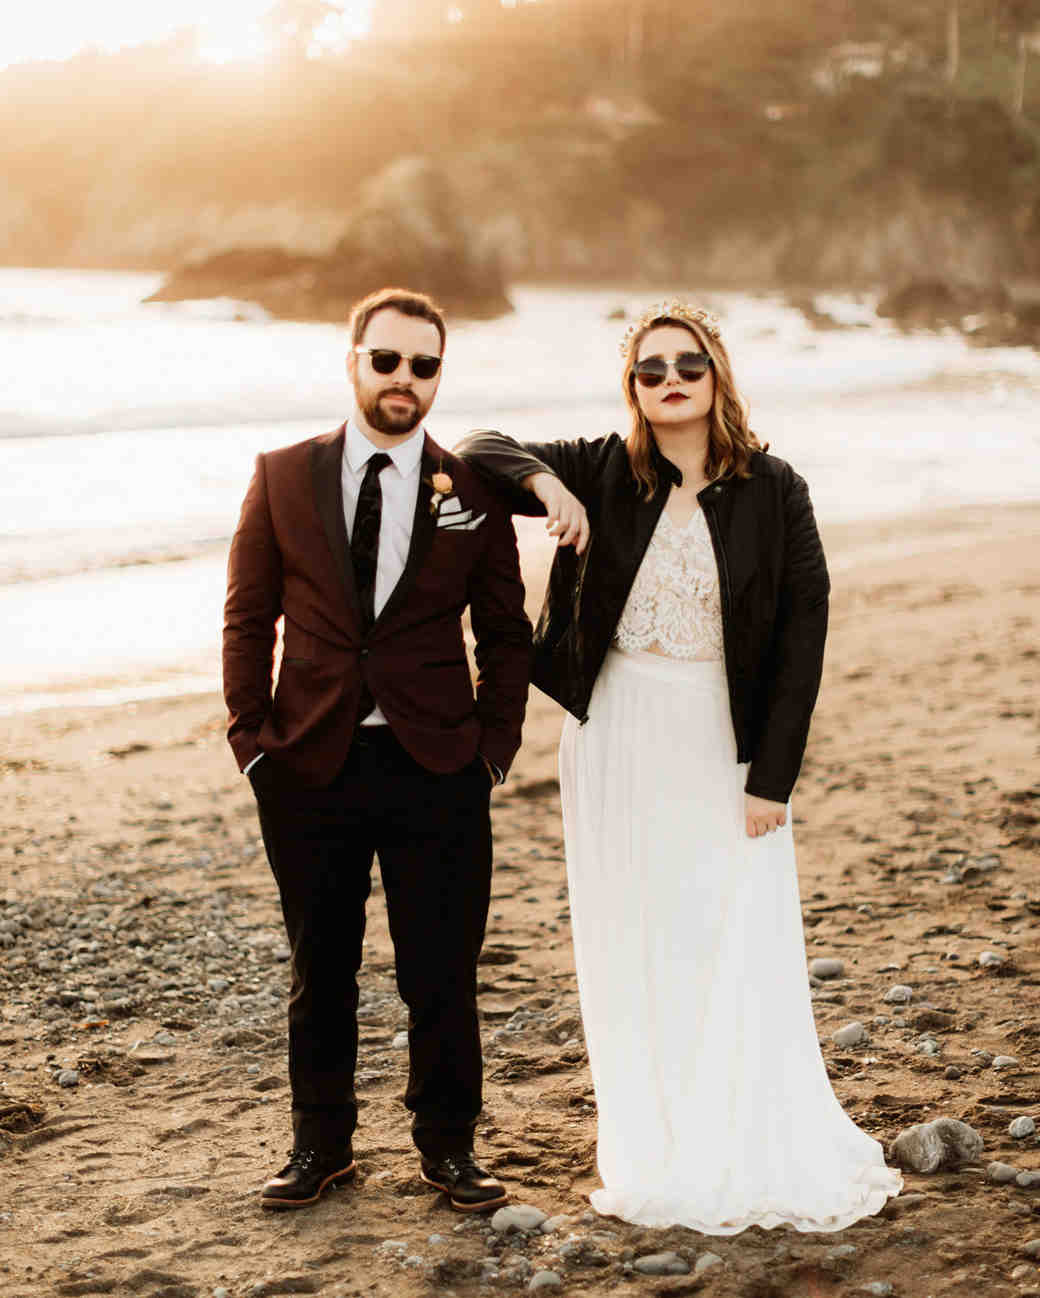 elopement outfit inspiration couple on beach wearing sunglasses